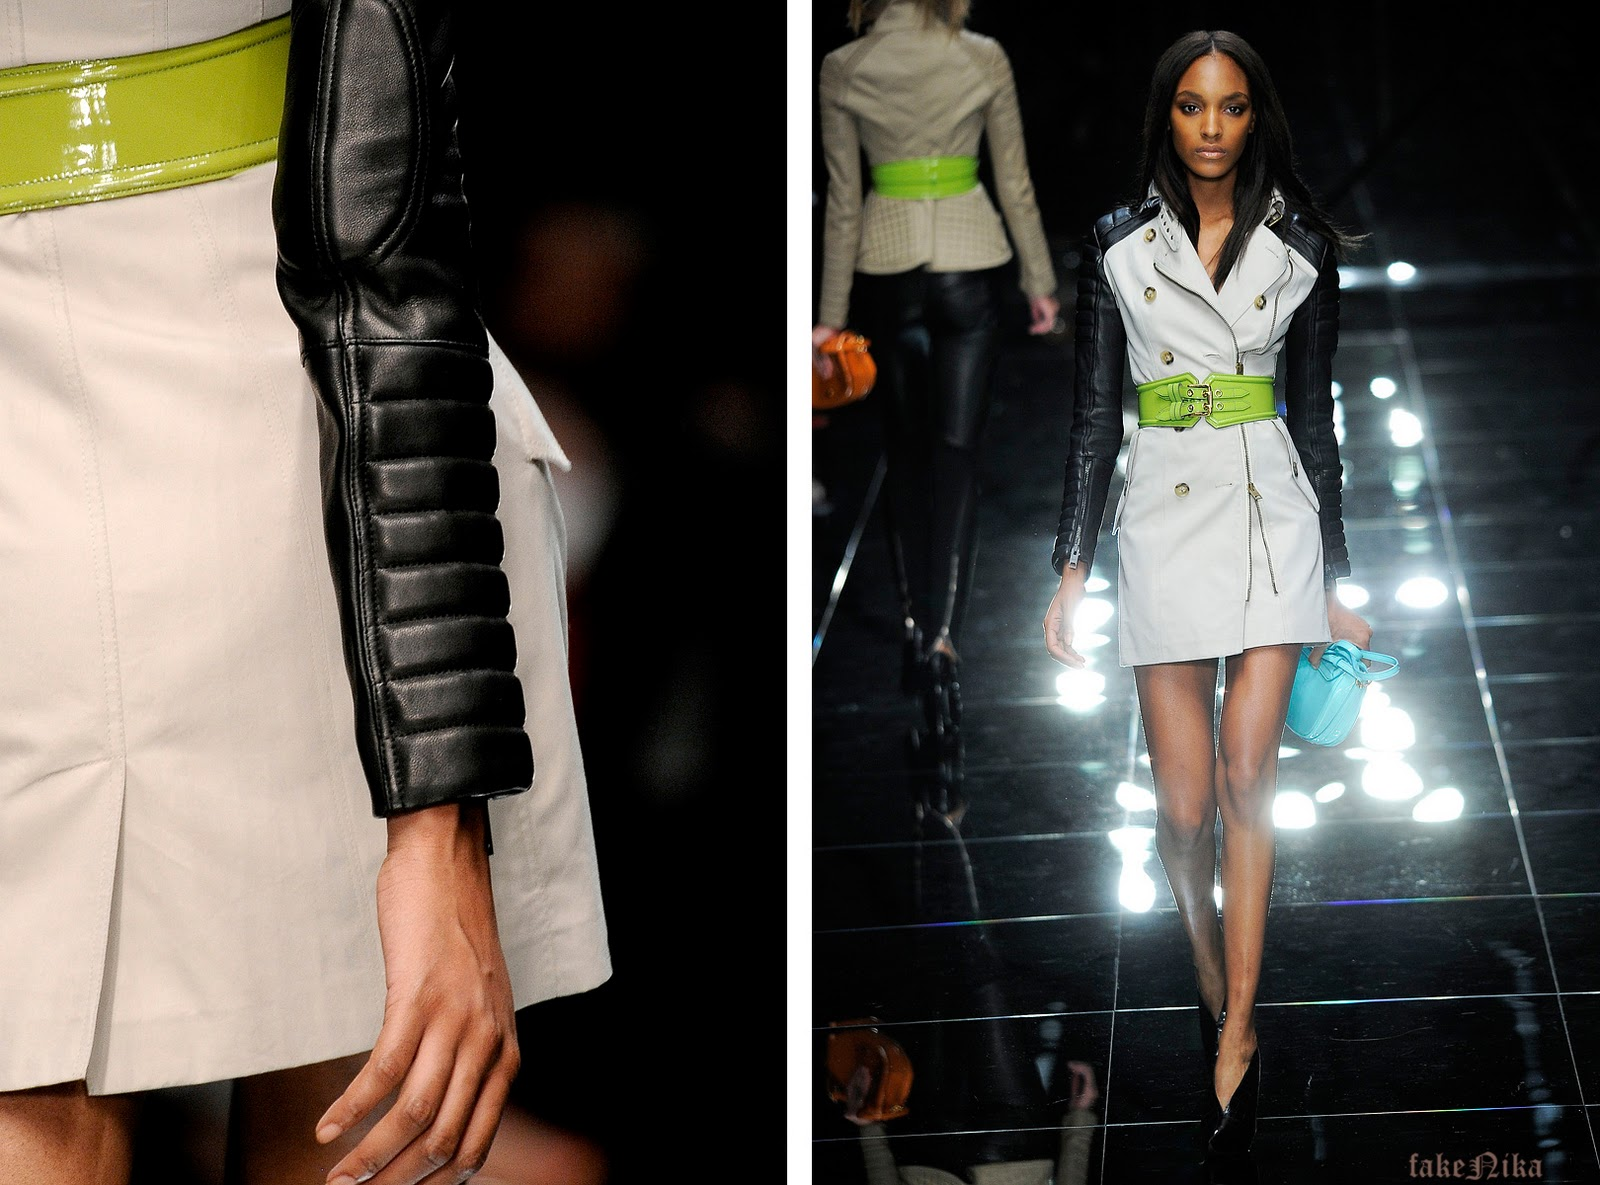 burberry prorsum quilted leather jacket 2011 IF YOU WANT TO SEE MORE- CLICK BUTTON BELOW!!!! ( Personally I advise